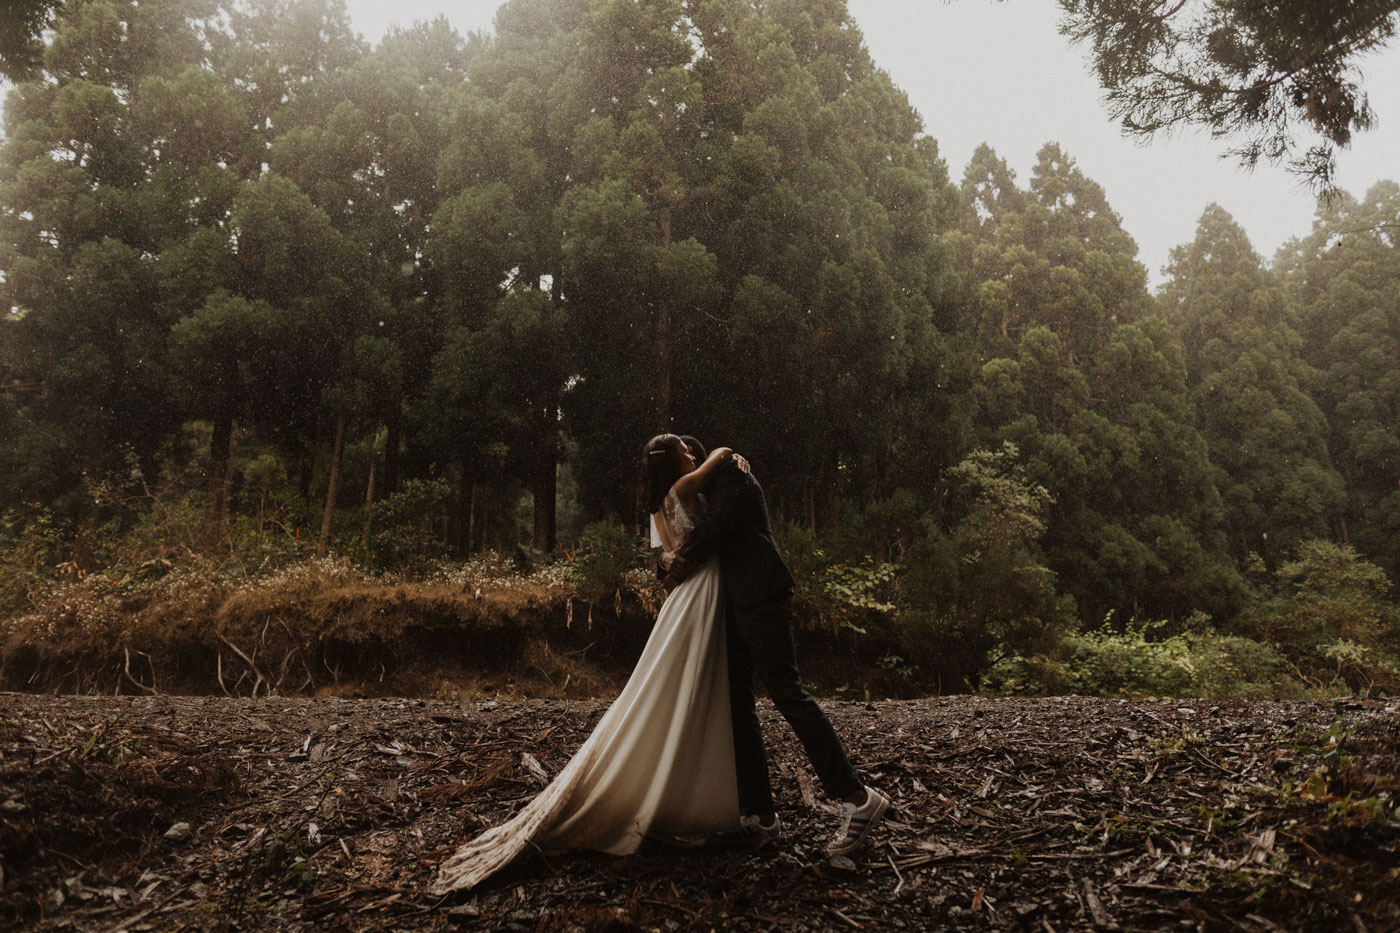 Rainy Trash the Dress in the forest